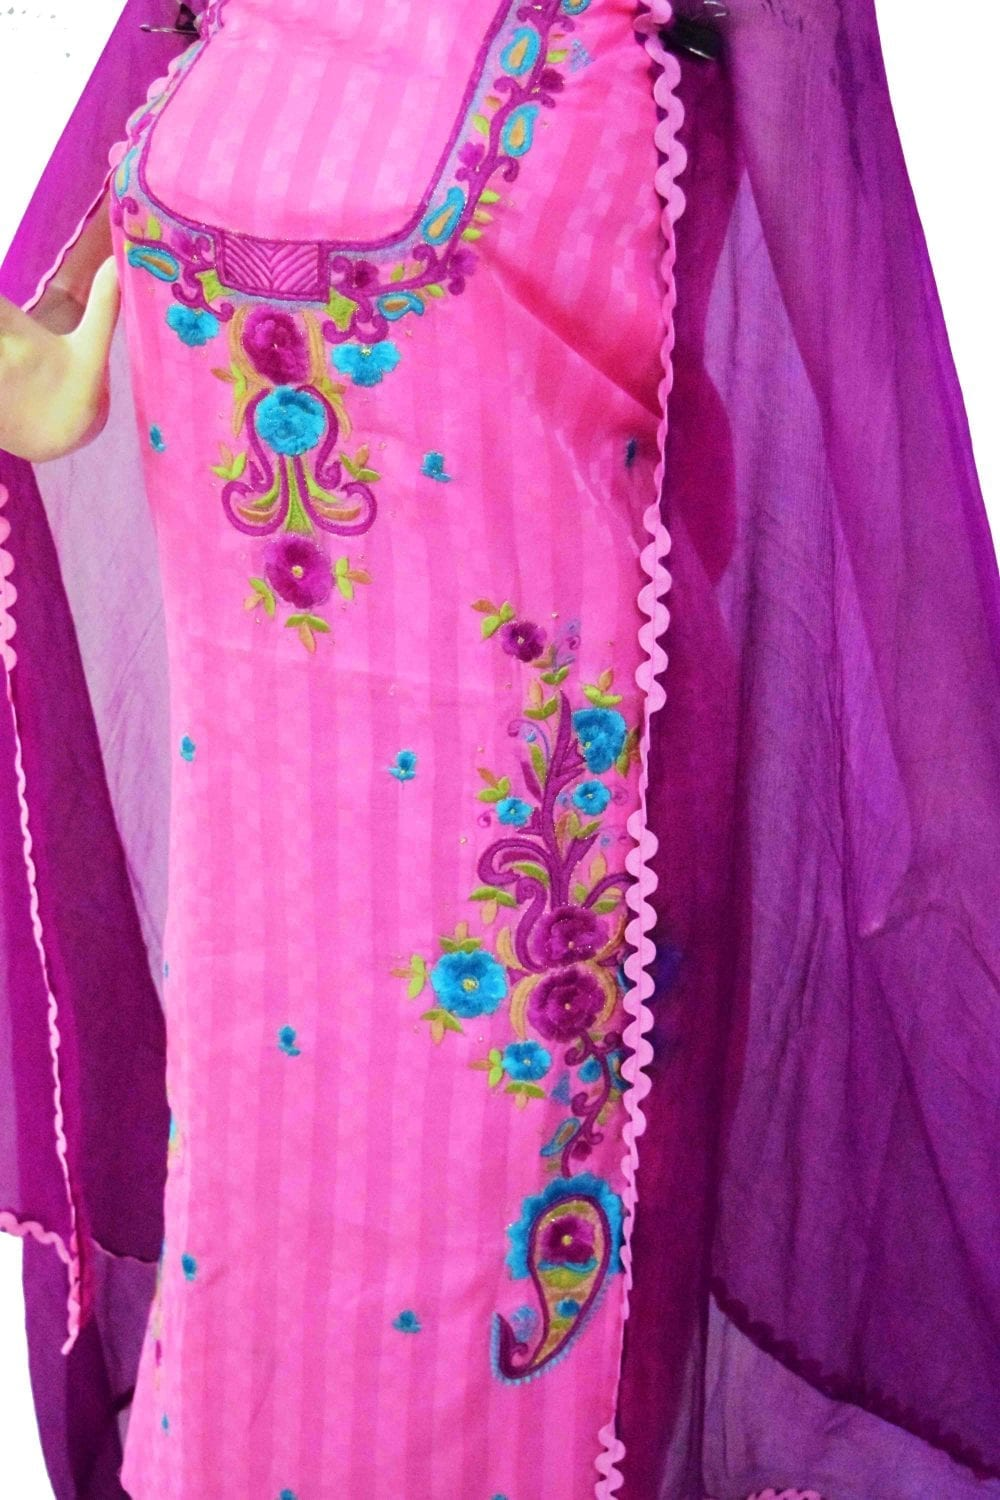 Designer Thread Embroidery 100% cotton Salwar Suit CHIFFON Dupatta RM332 3